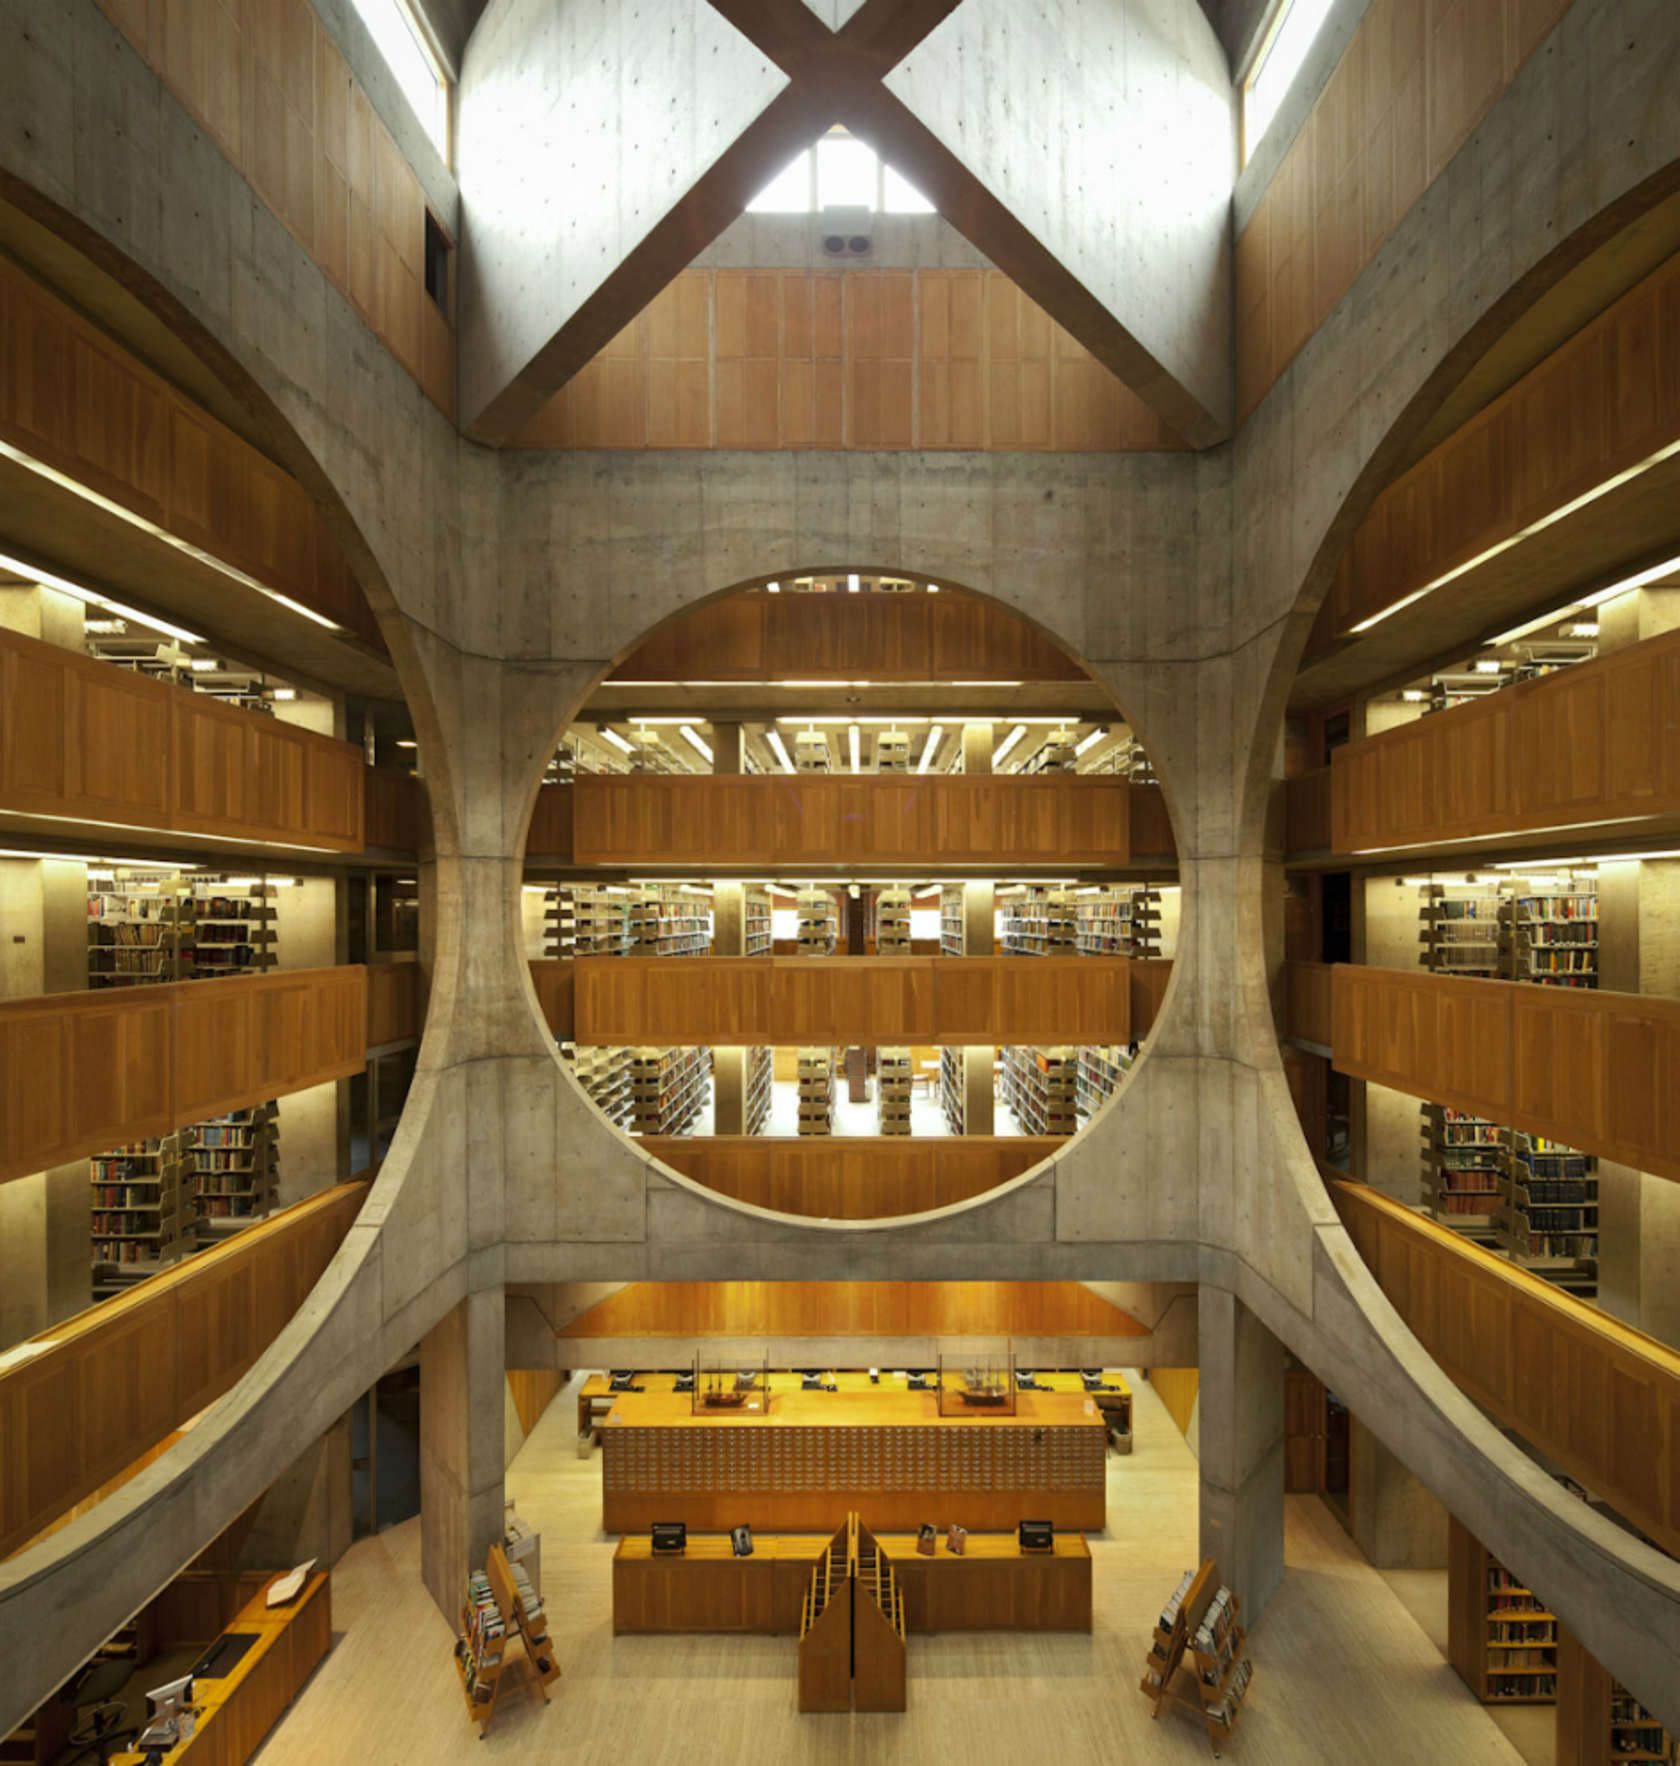 Phillips Exeter Academy Library, Exeter, New Hampshire (1972)